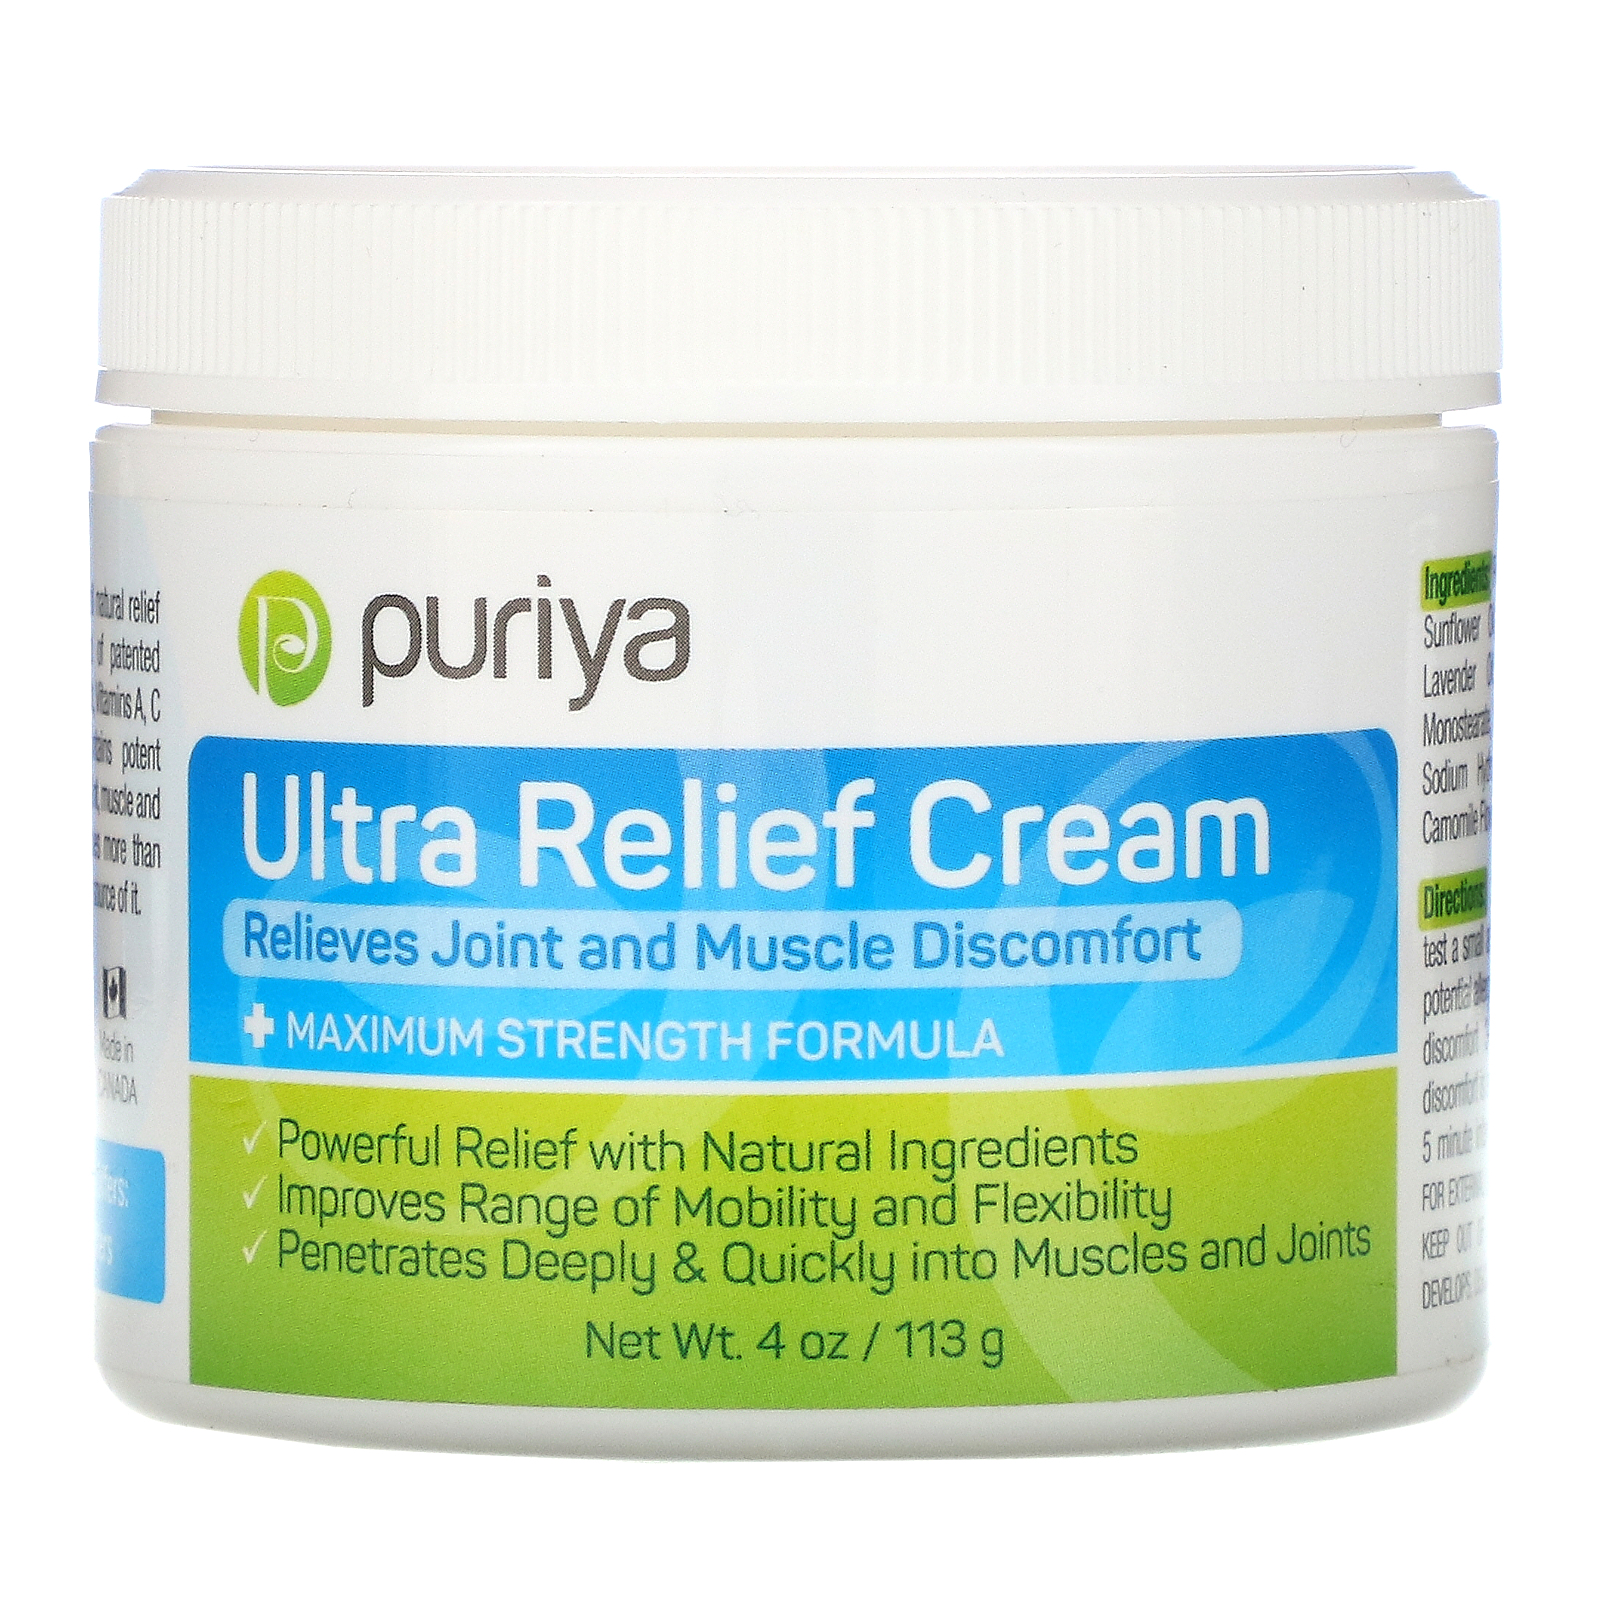 Puriya, Ultra Relief Cream, 4 oz (113 g)